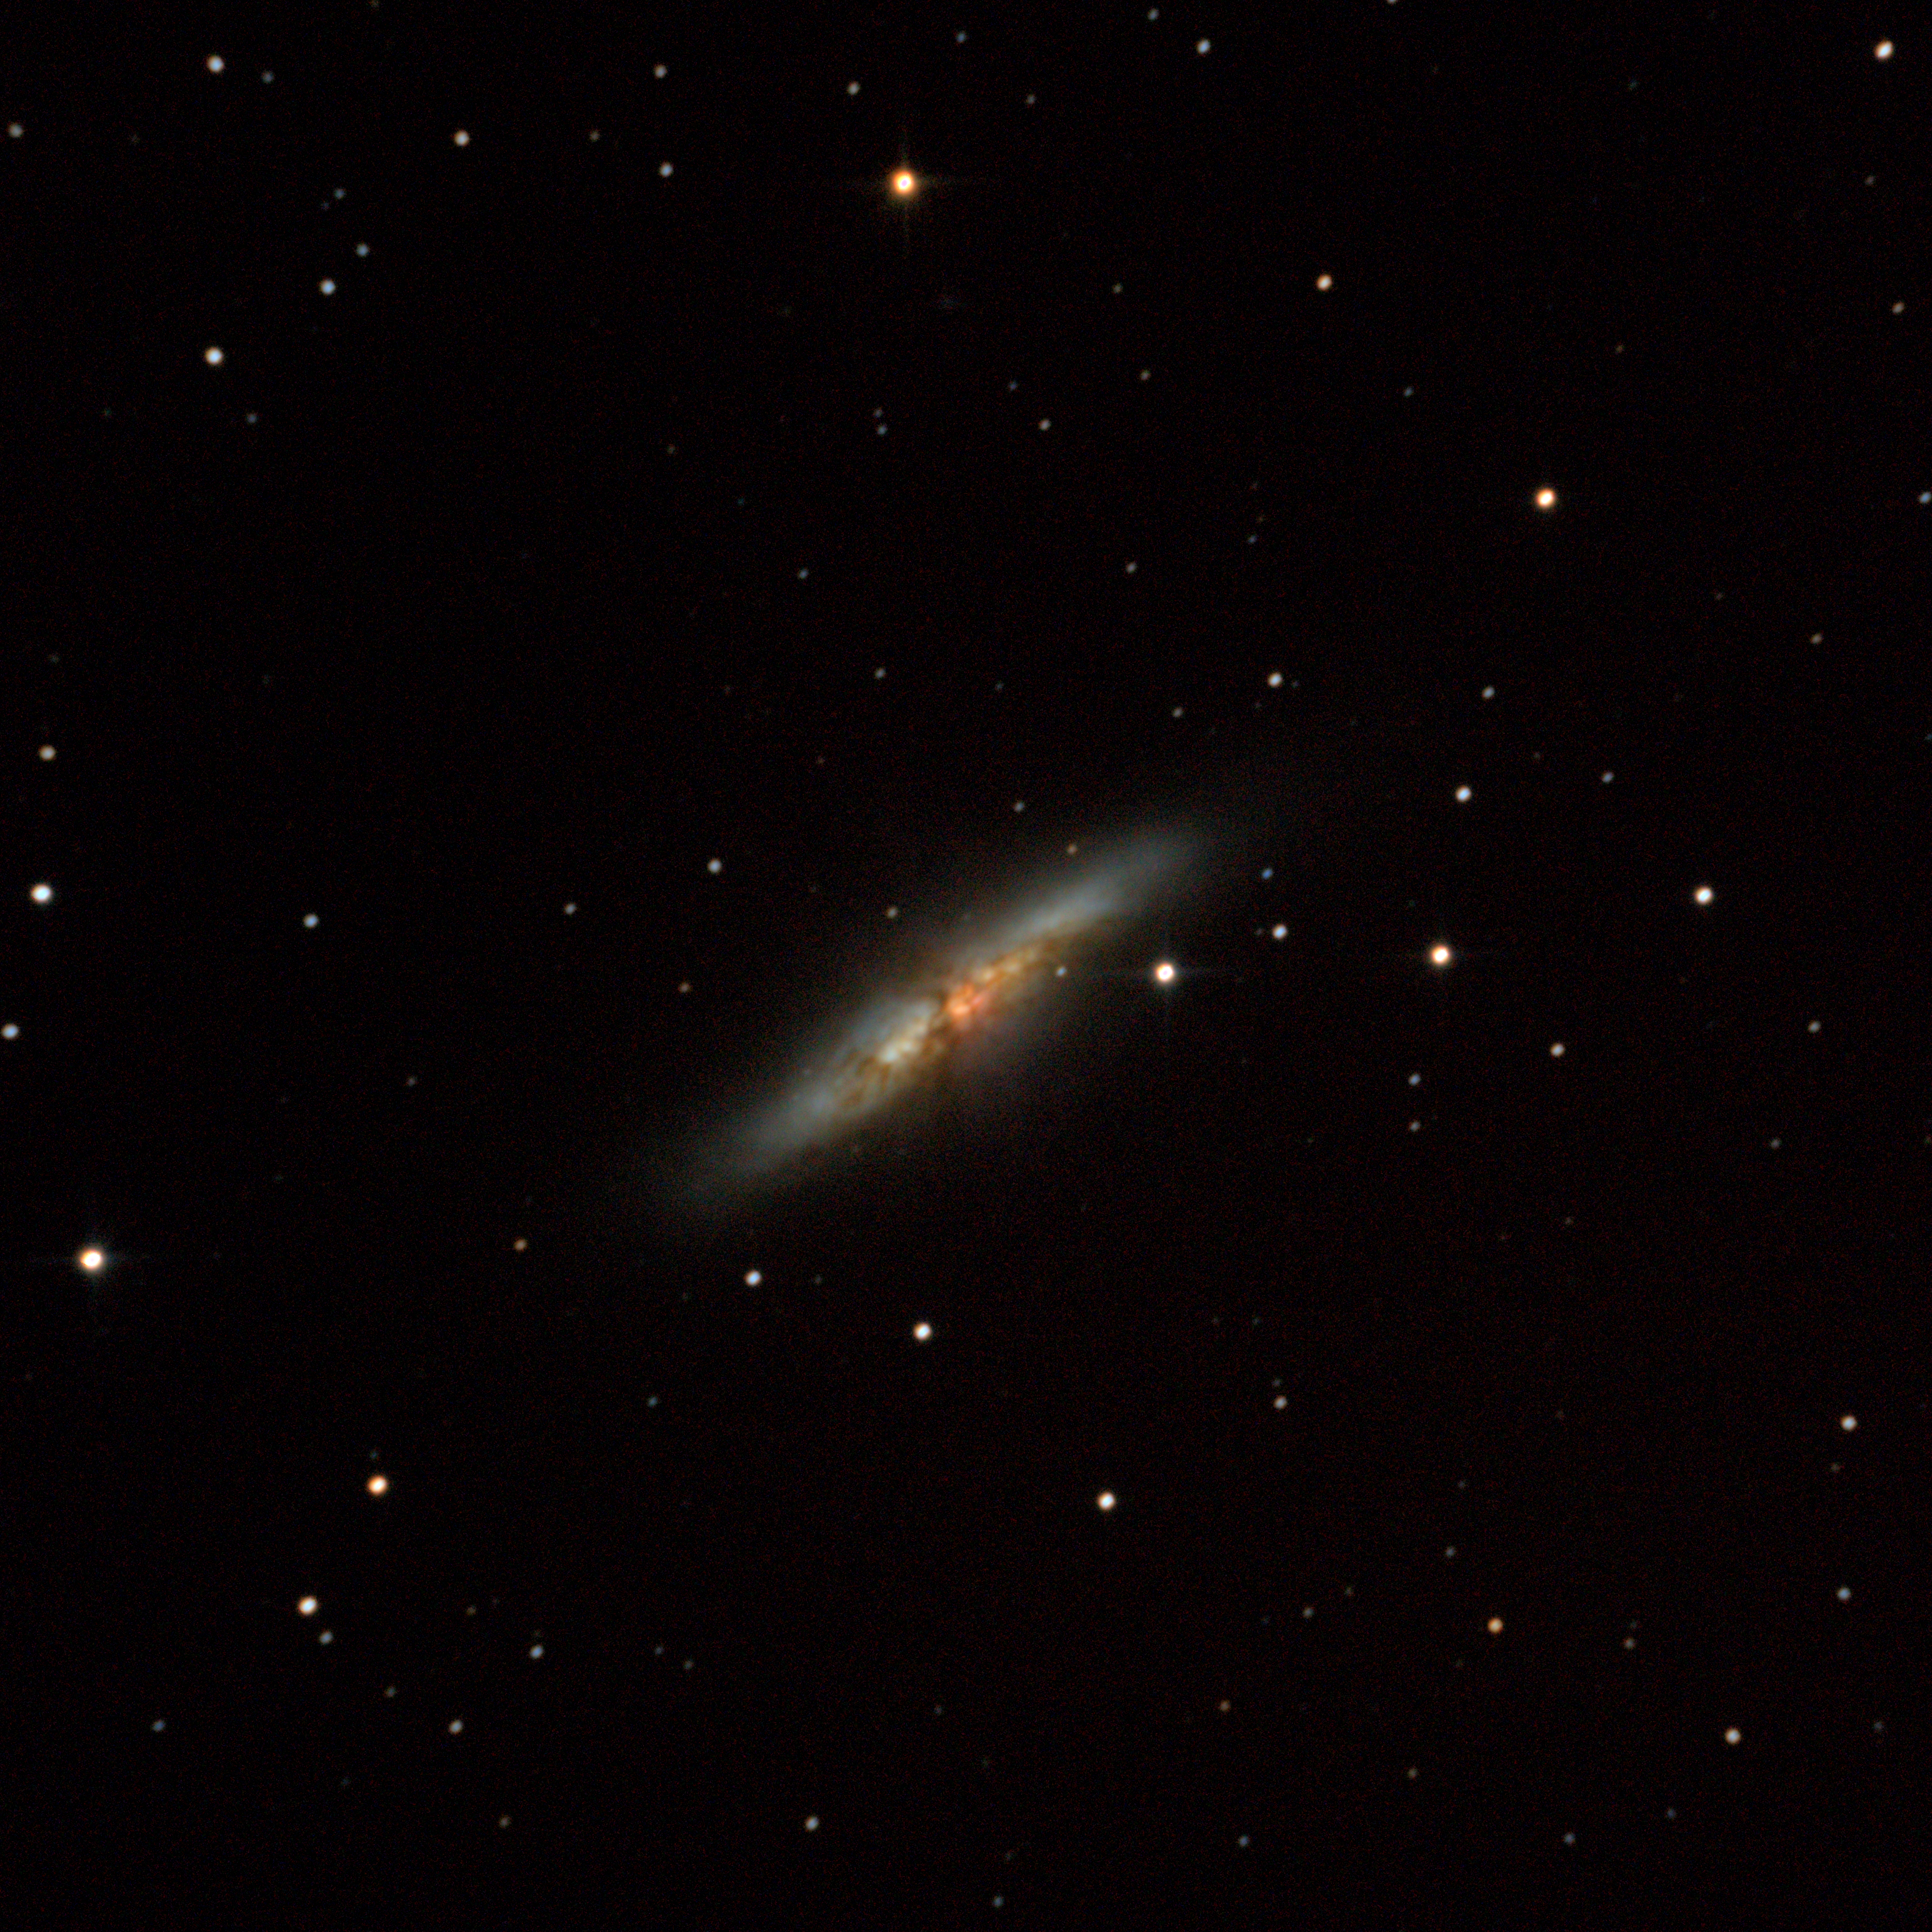 M81 + M82 : Galaxies de Bode et du Cigare Picture-3da1b0a0d9bc8fb4dc40861cb46e3f36-original